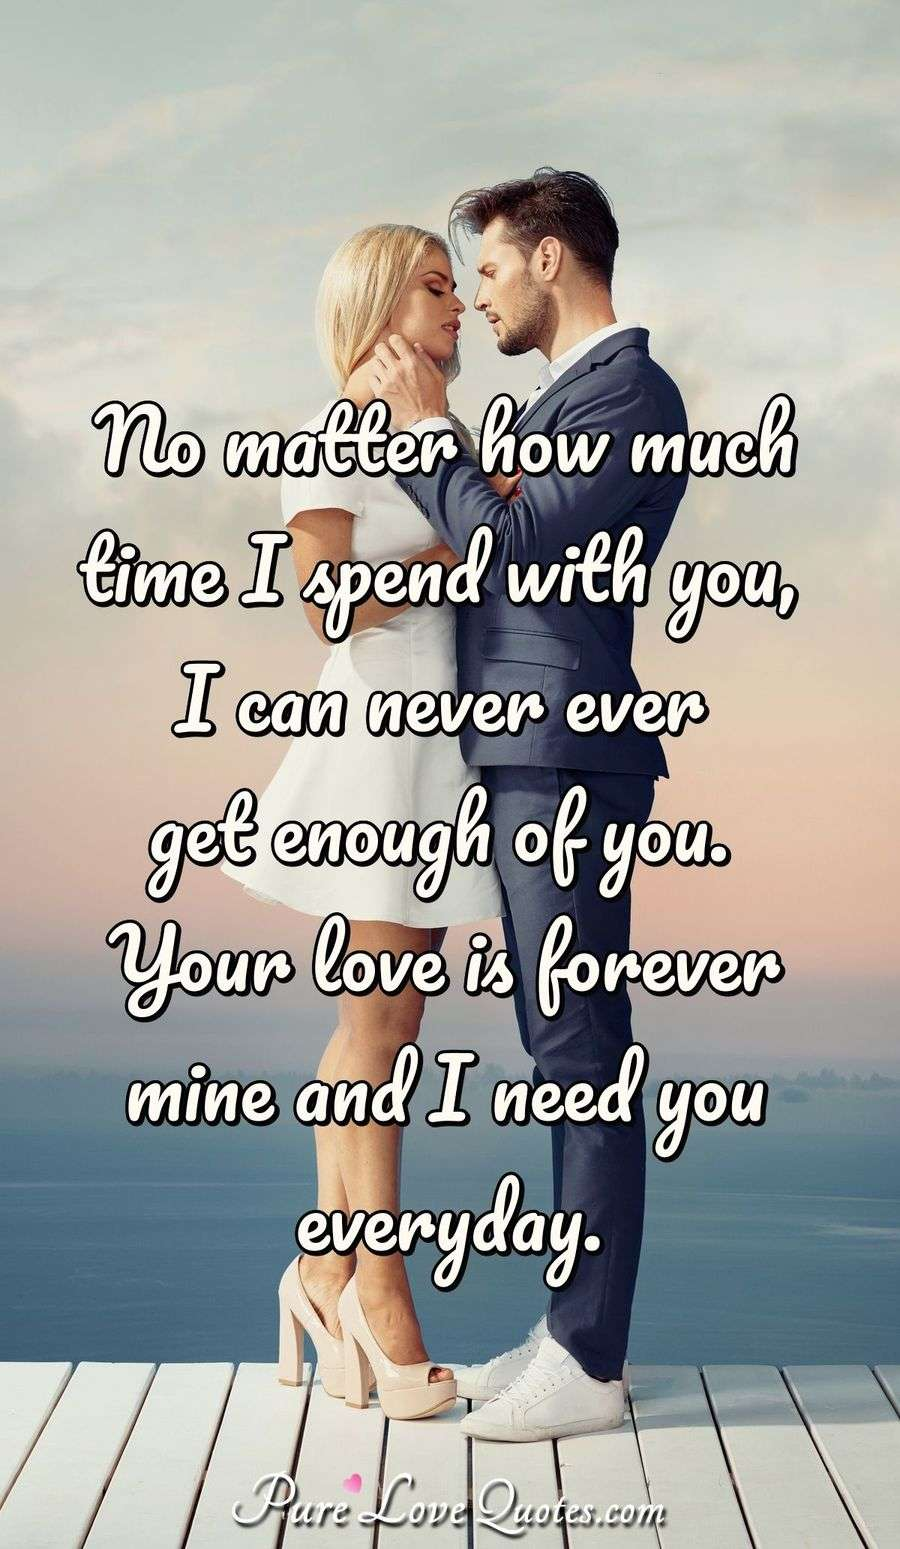 No matter how much time I spend with you, I can never ever get enough of you. Your love is forever mine and I need you everyday.